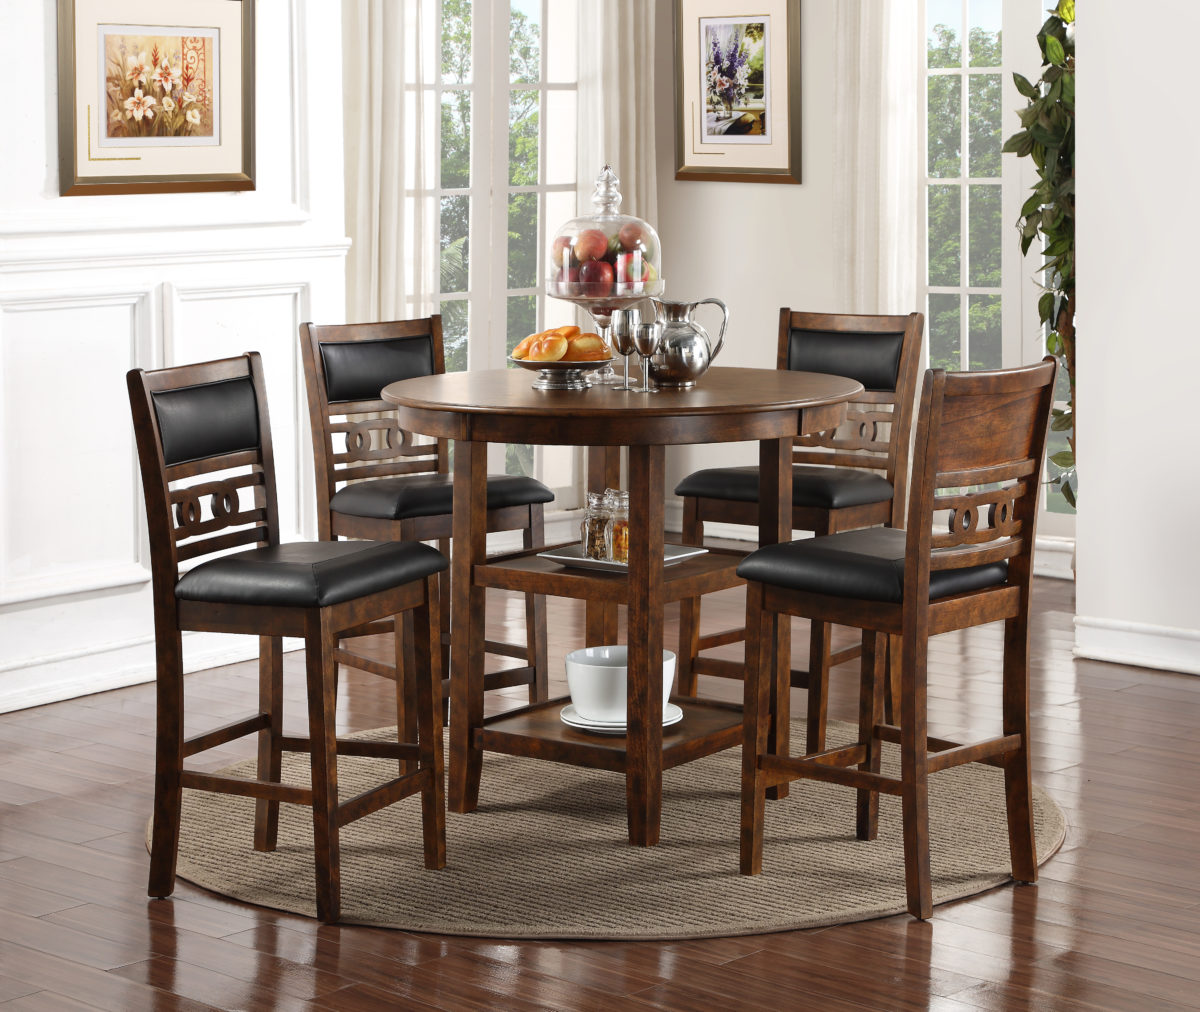 GIA Dining Room D1701